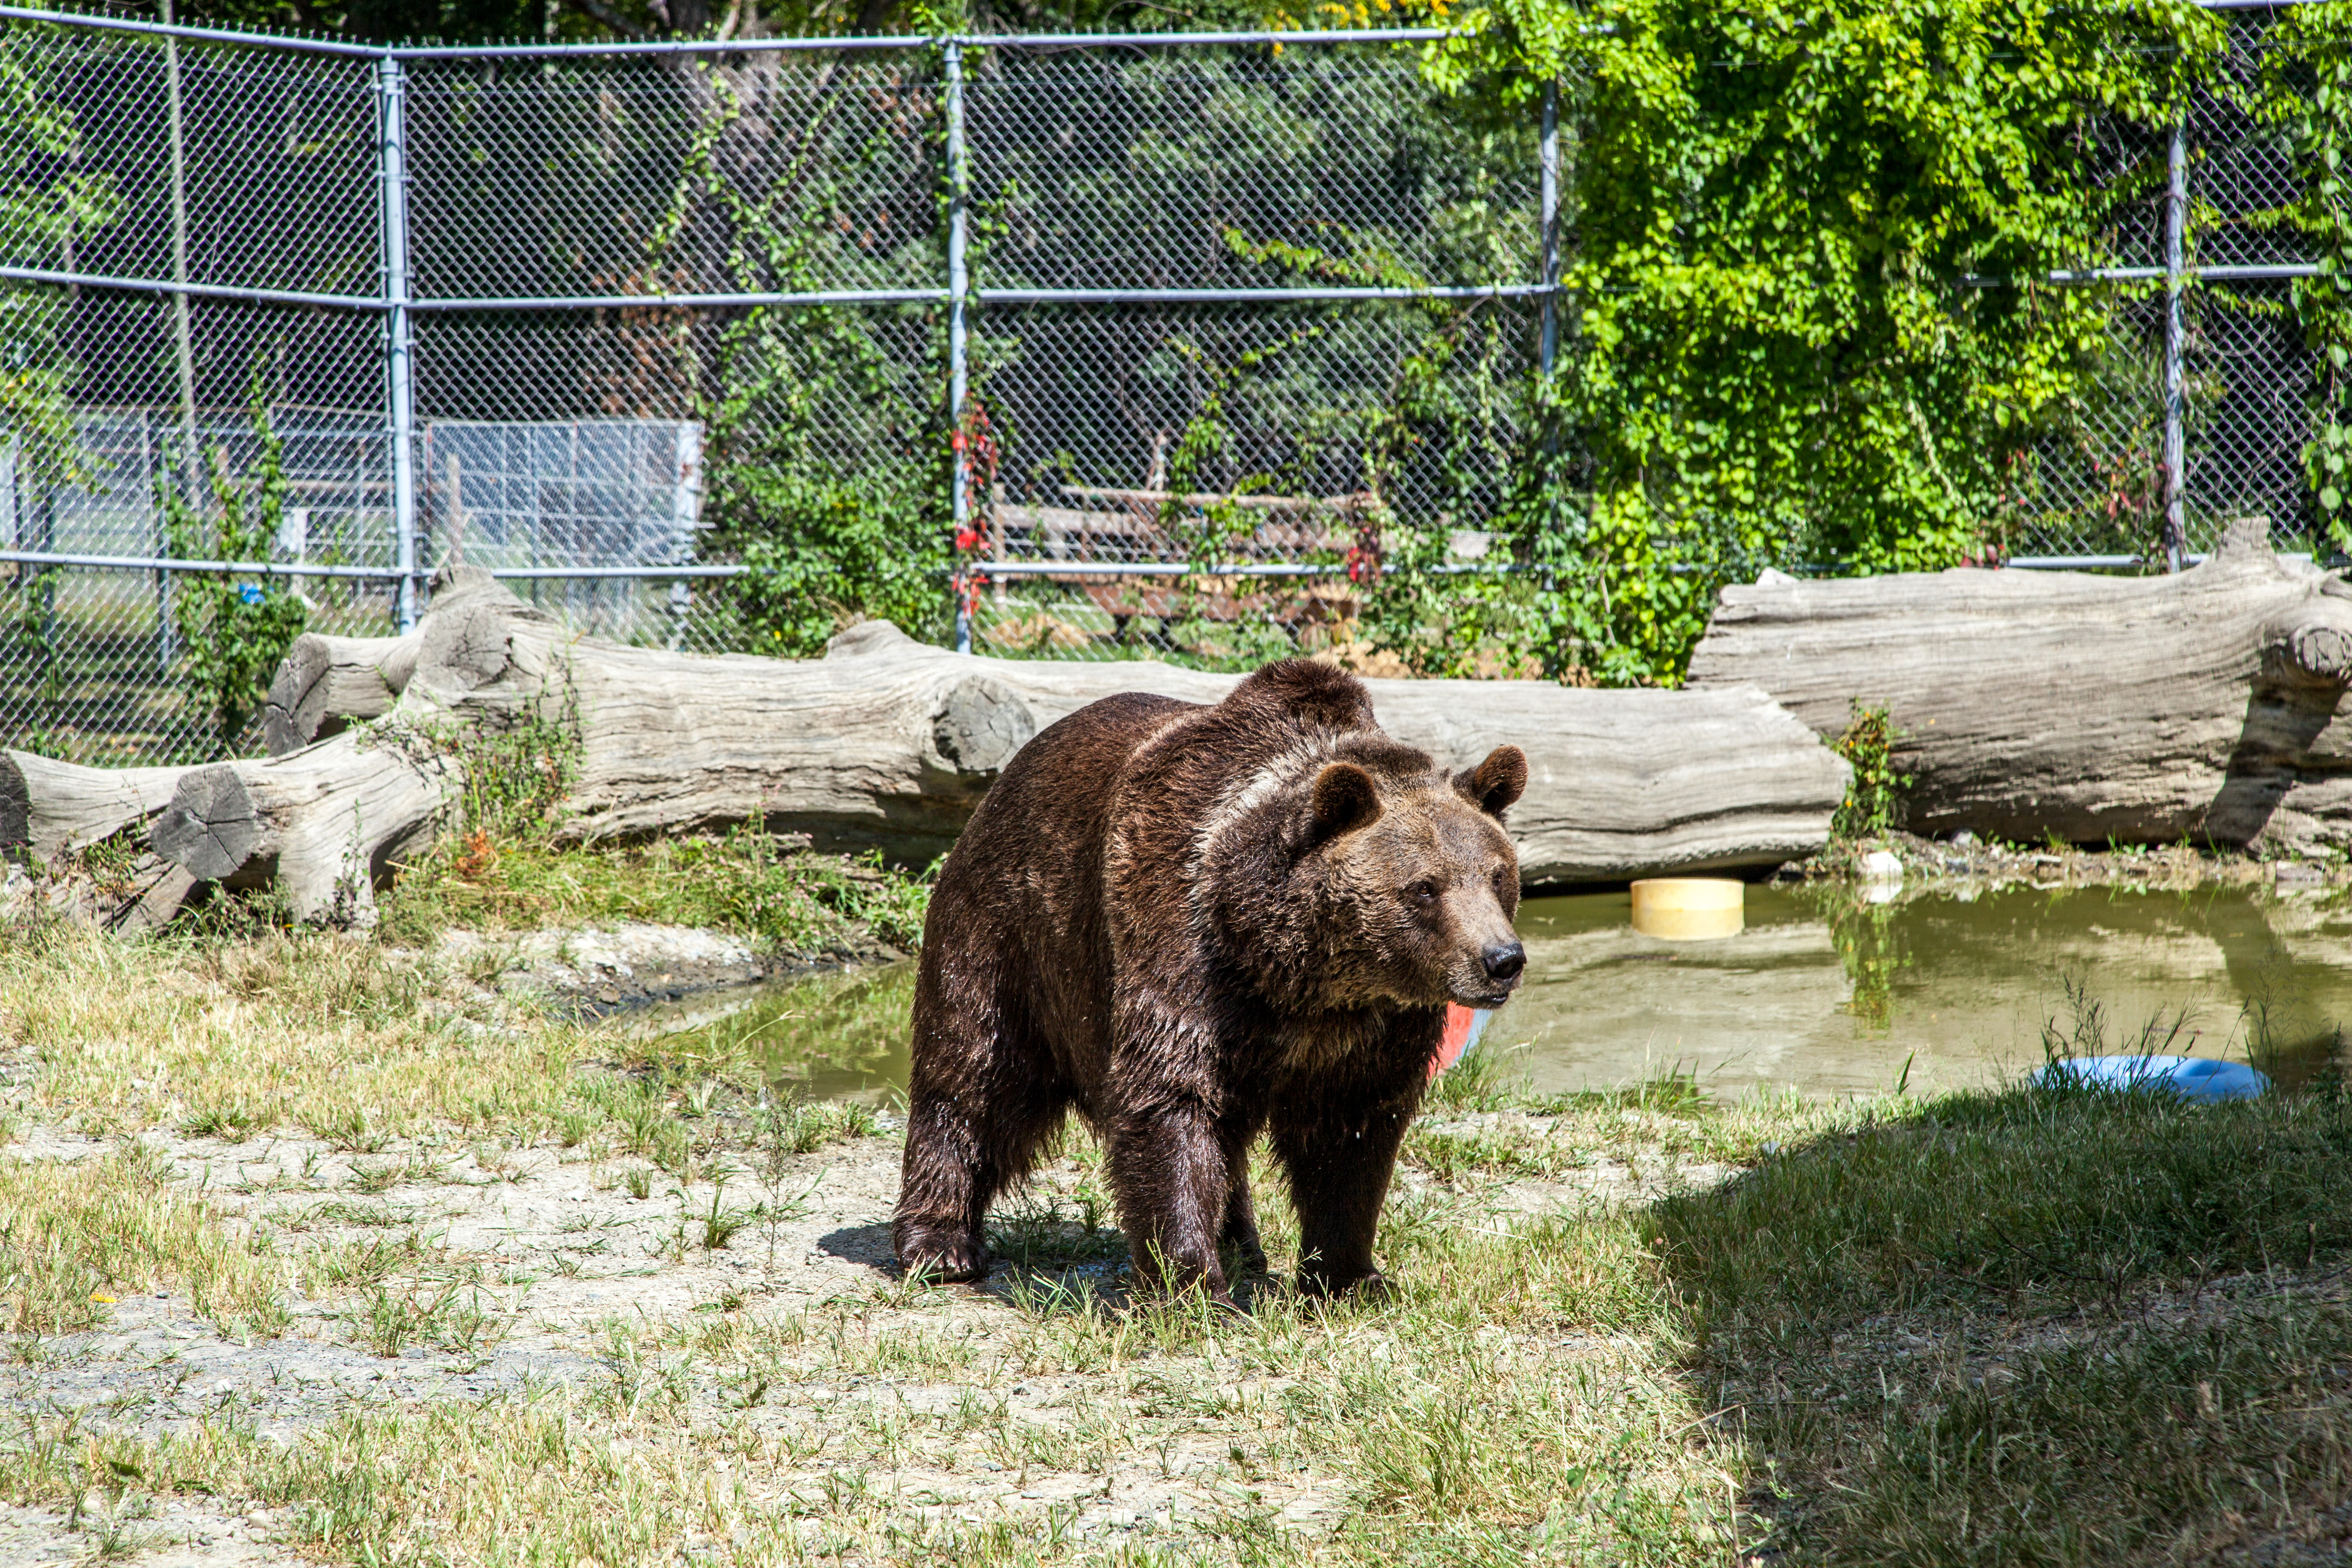 Leo, a 22-year-old Syrian bear, in an enclosure at the Orphaned Wildlife Center in Otisville on Sept. 7, 2016. (James Smith)